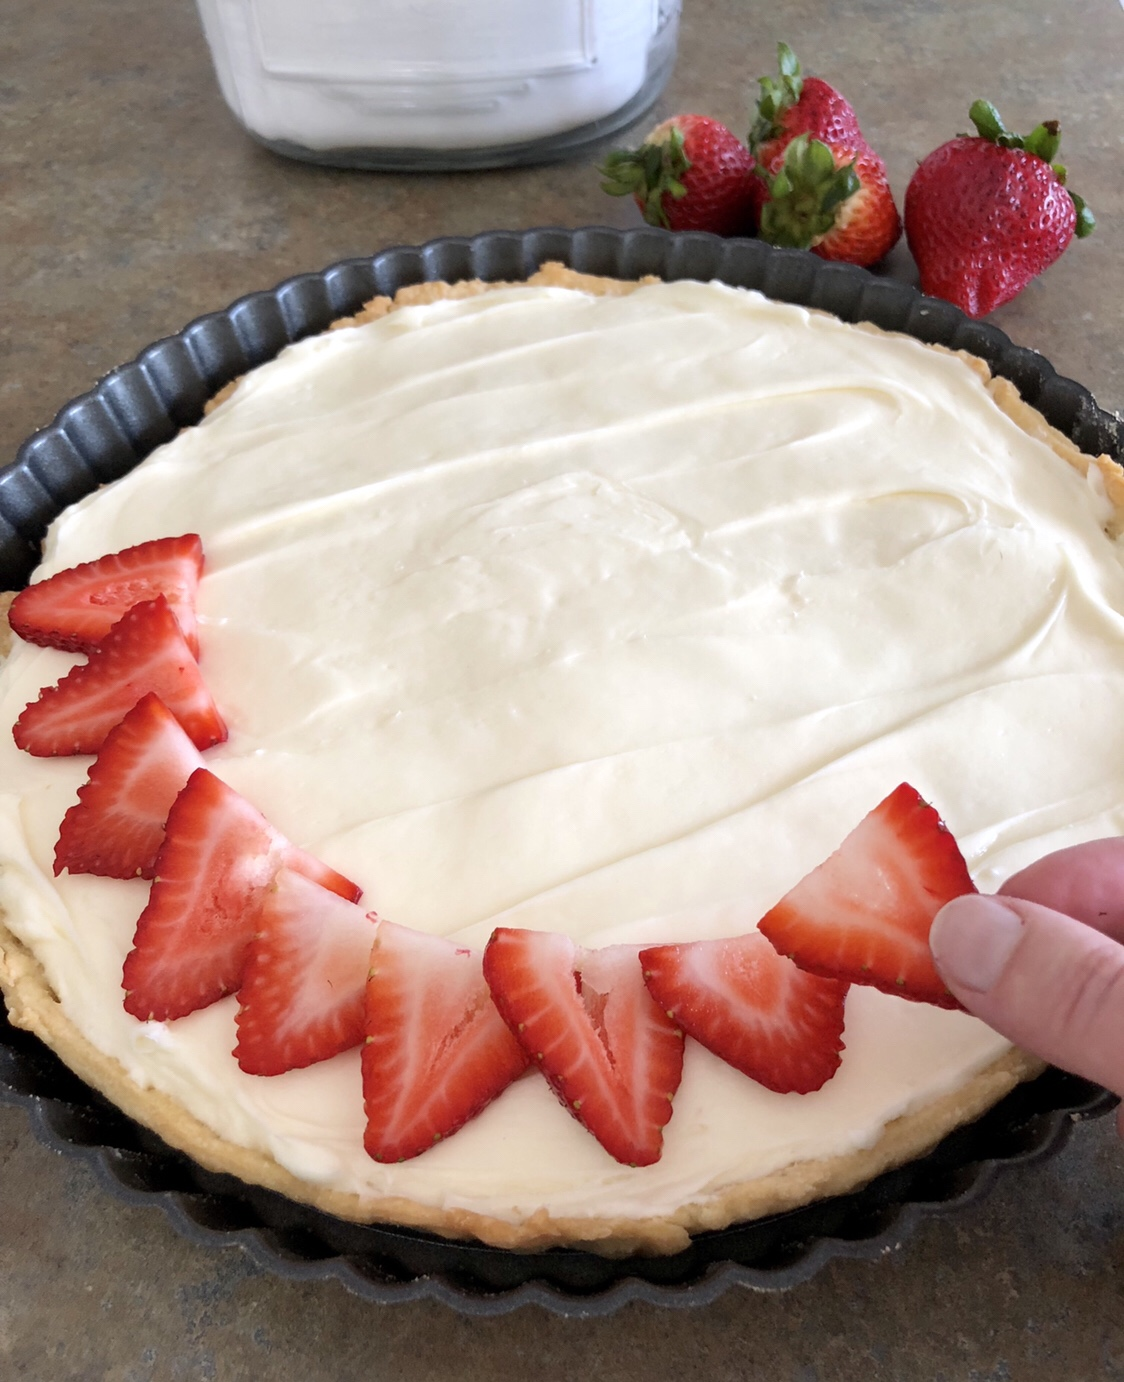 Layer the strawberry slices on top of the cream cheese filling. #tart #fruittart #dessert #summerdessert #summertart